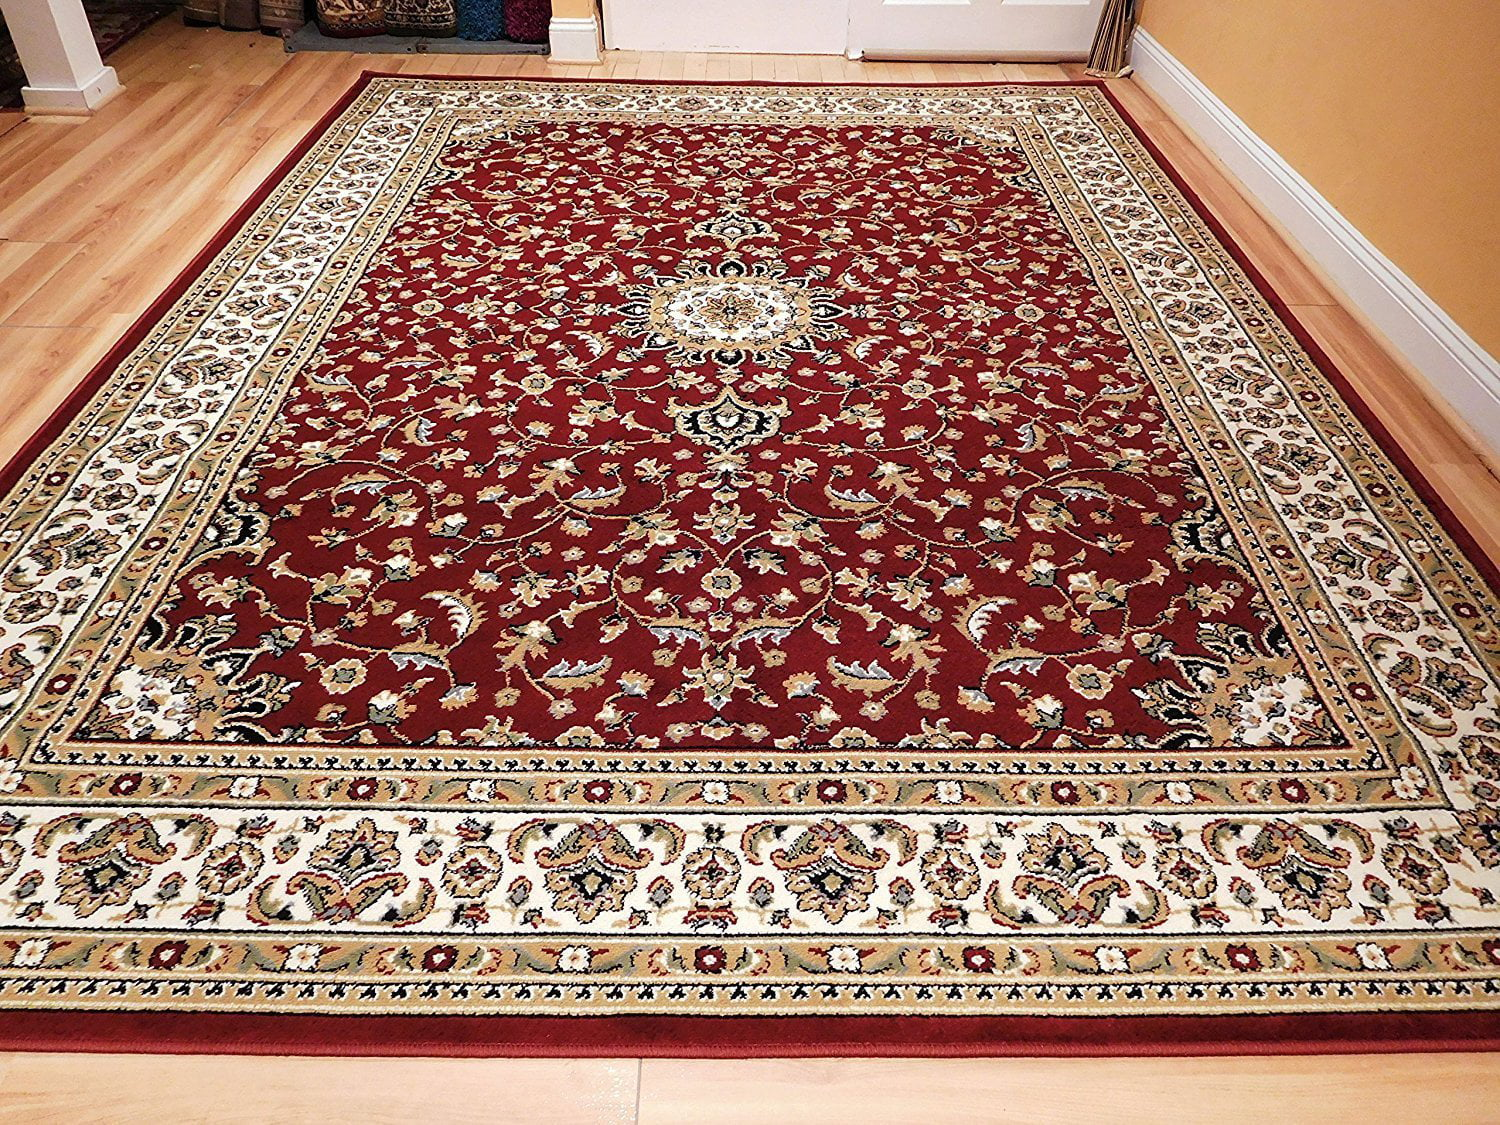 Ctemporary Area Rugs 5x7 Area Rugs5 by 7 Rug for Living Room Red ...